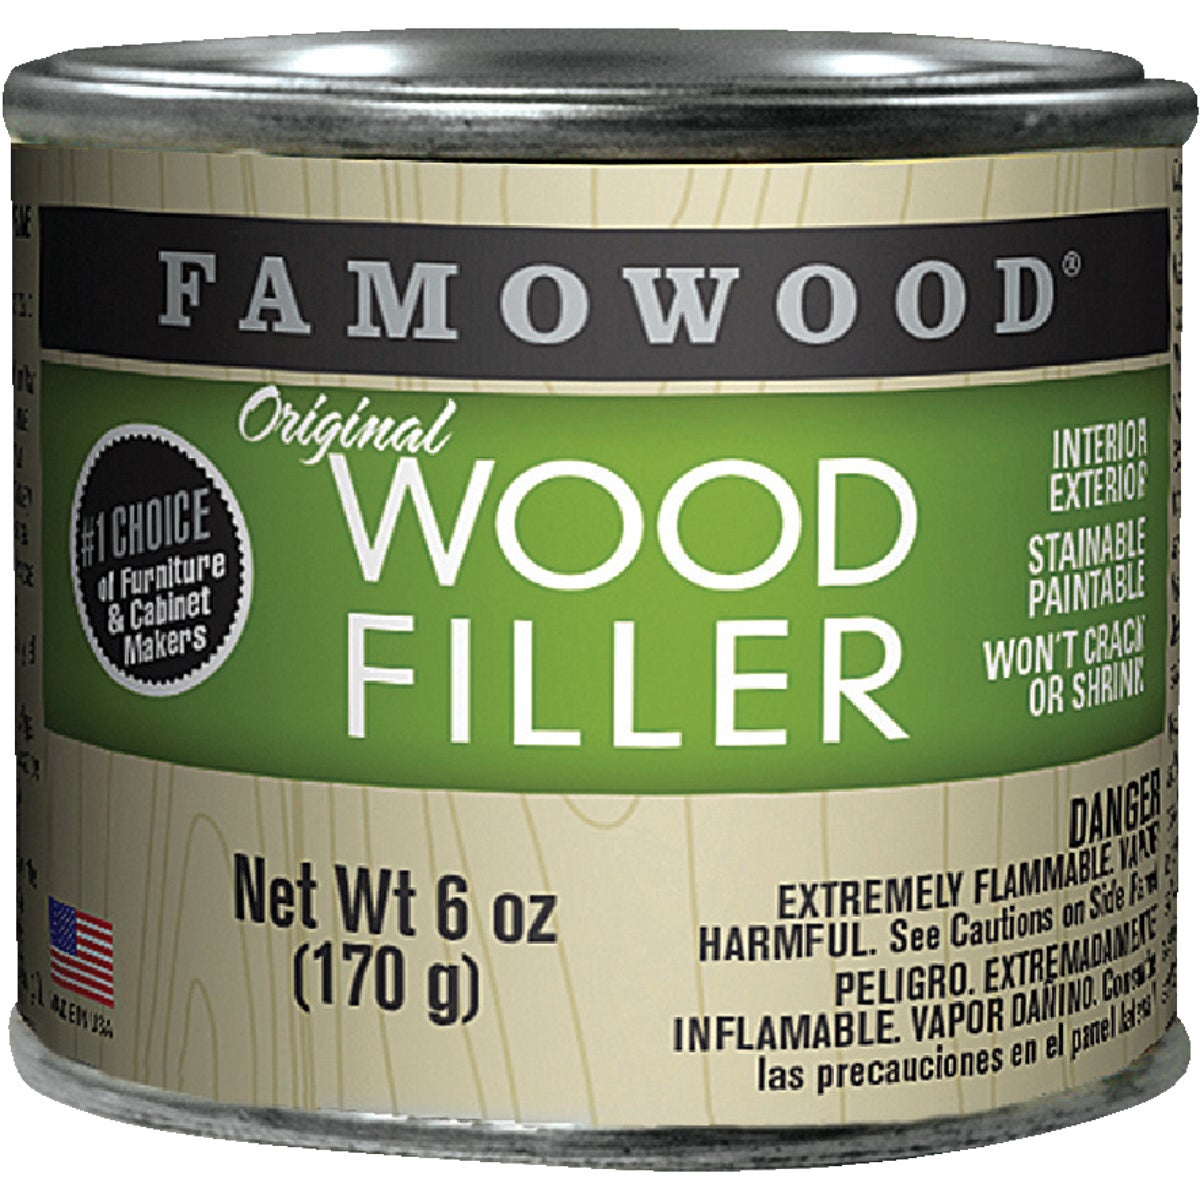 1/4PT RD OAK WOOD FILLER - 36141134 by Eclectic Prod Inc